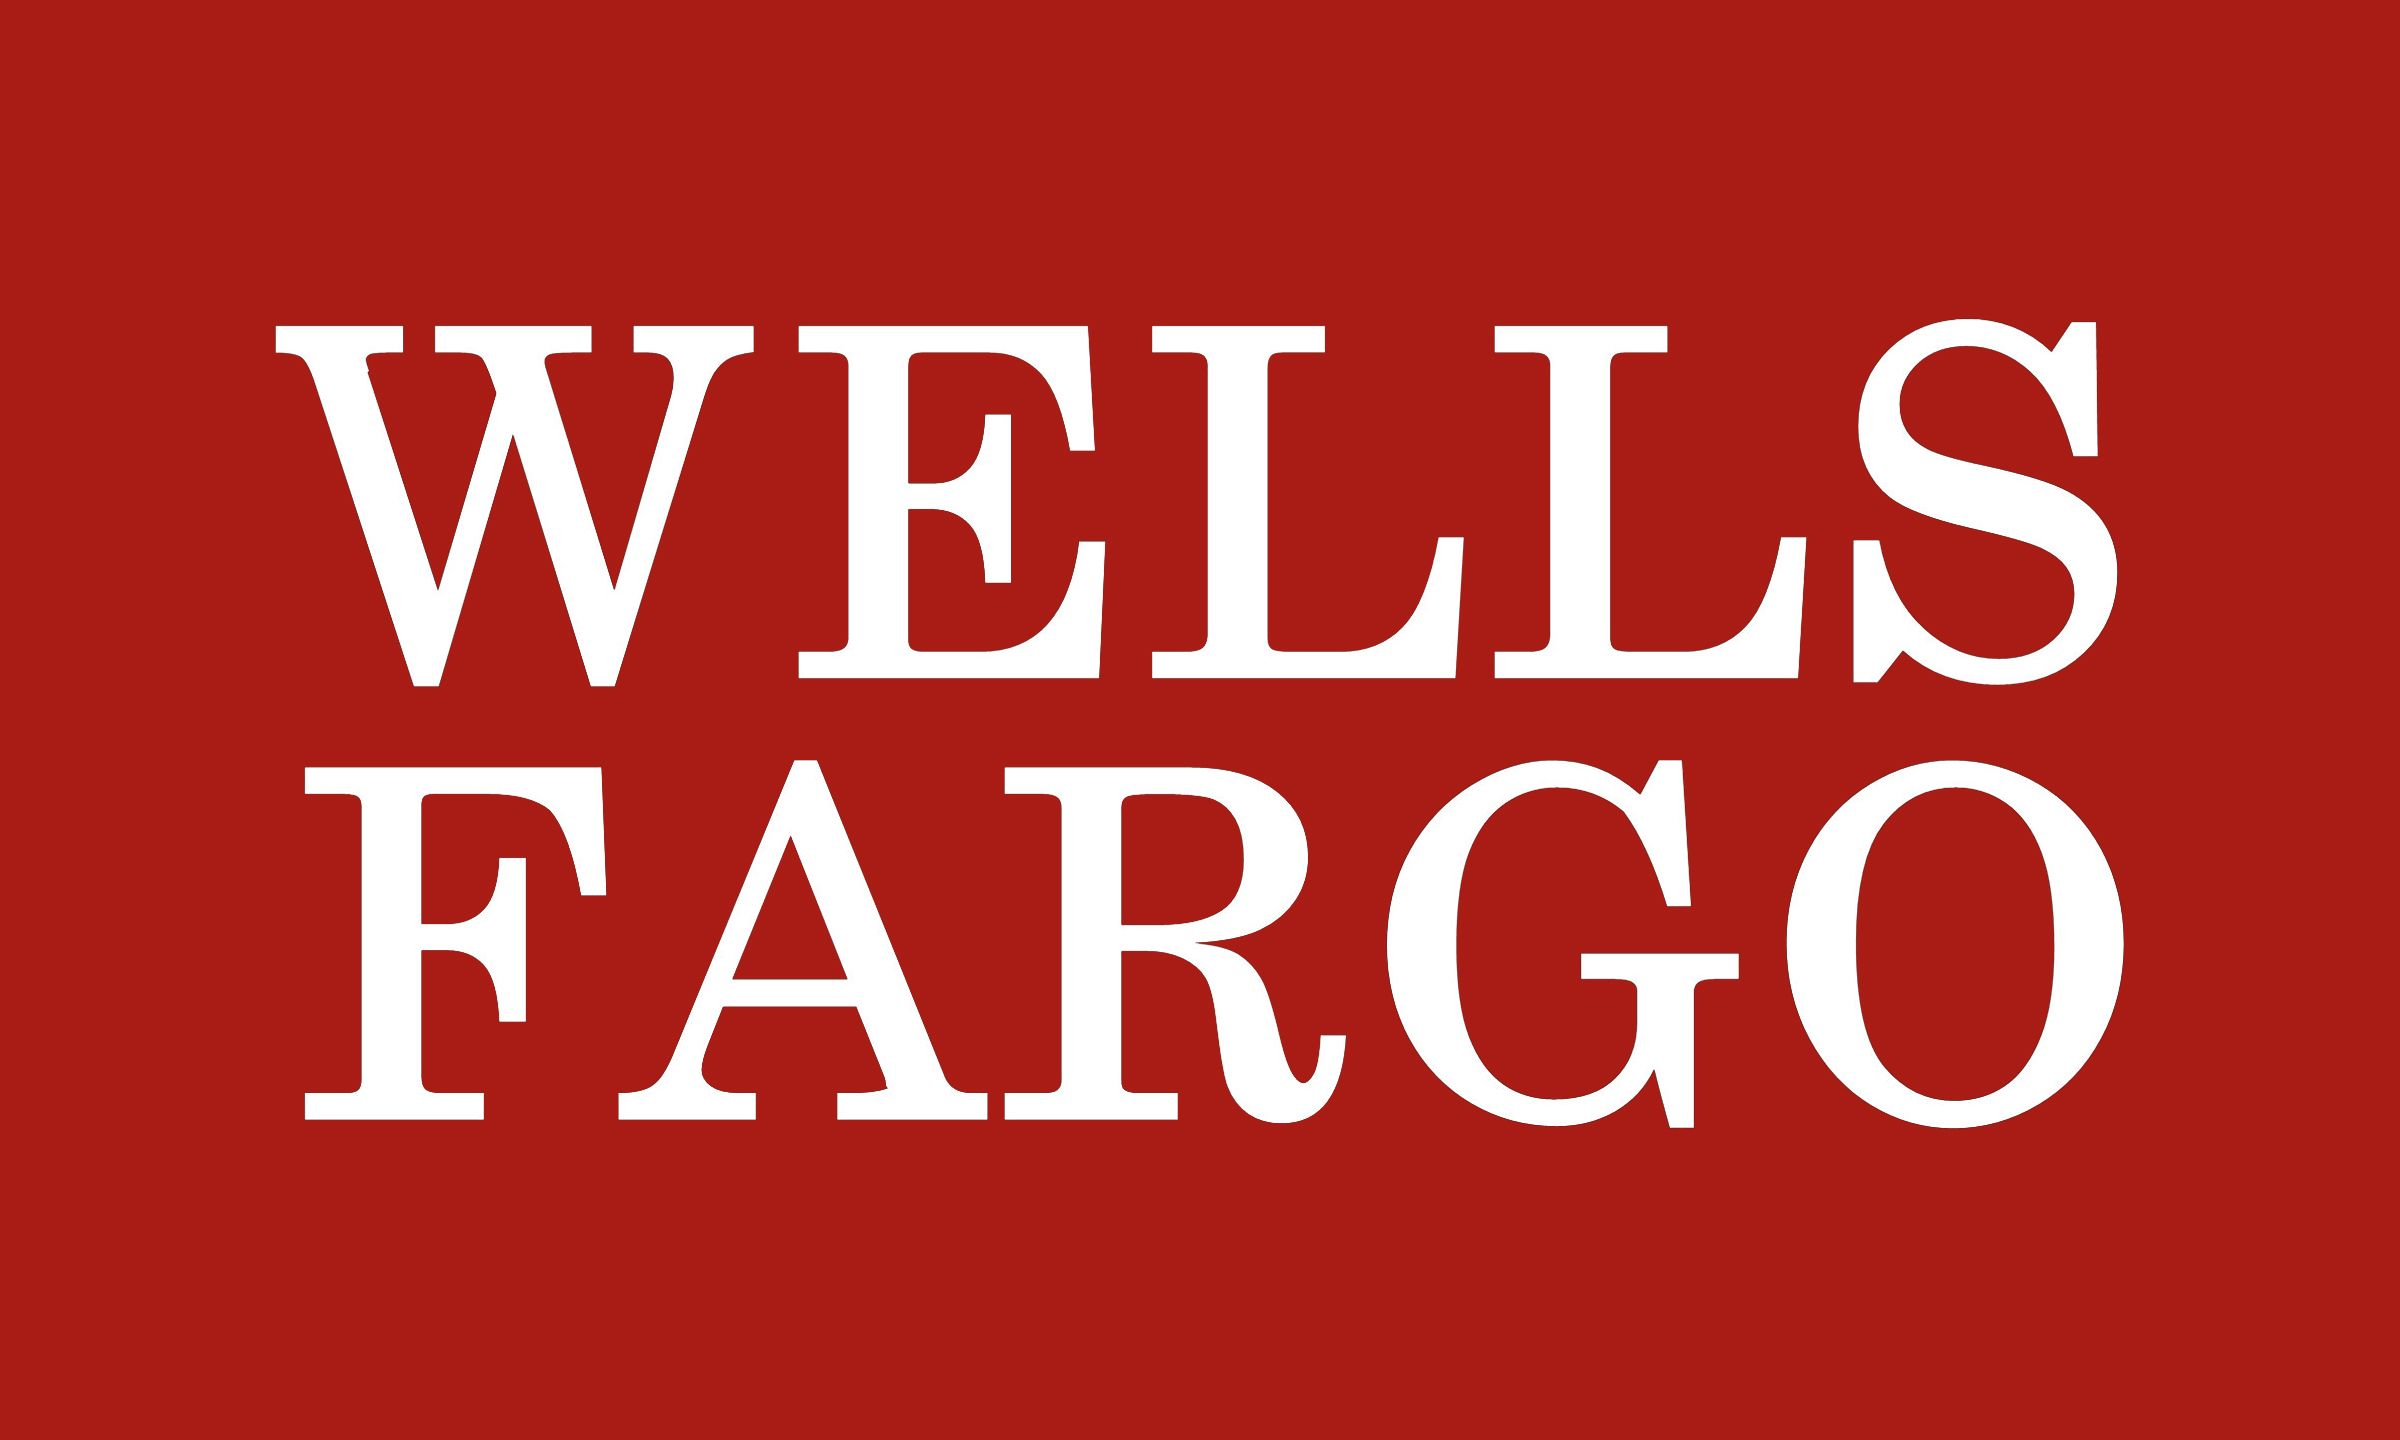 Wells Fargo Logo - Wells Fargo Logo, Wells Fargo Symbol, Meaning, History and Evolution